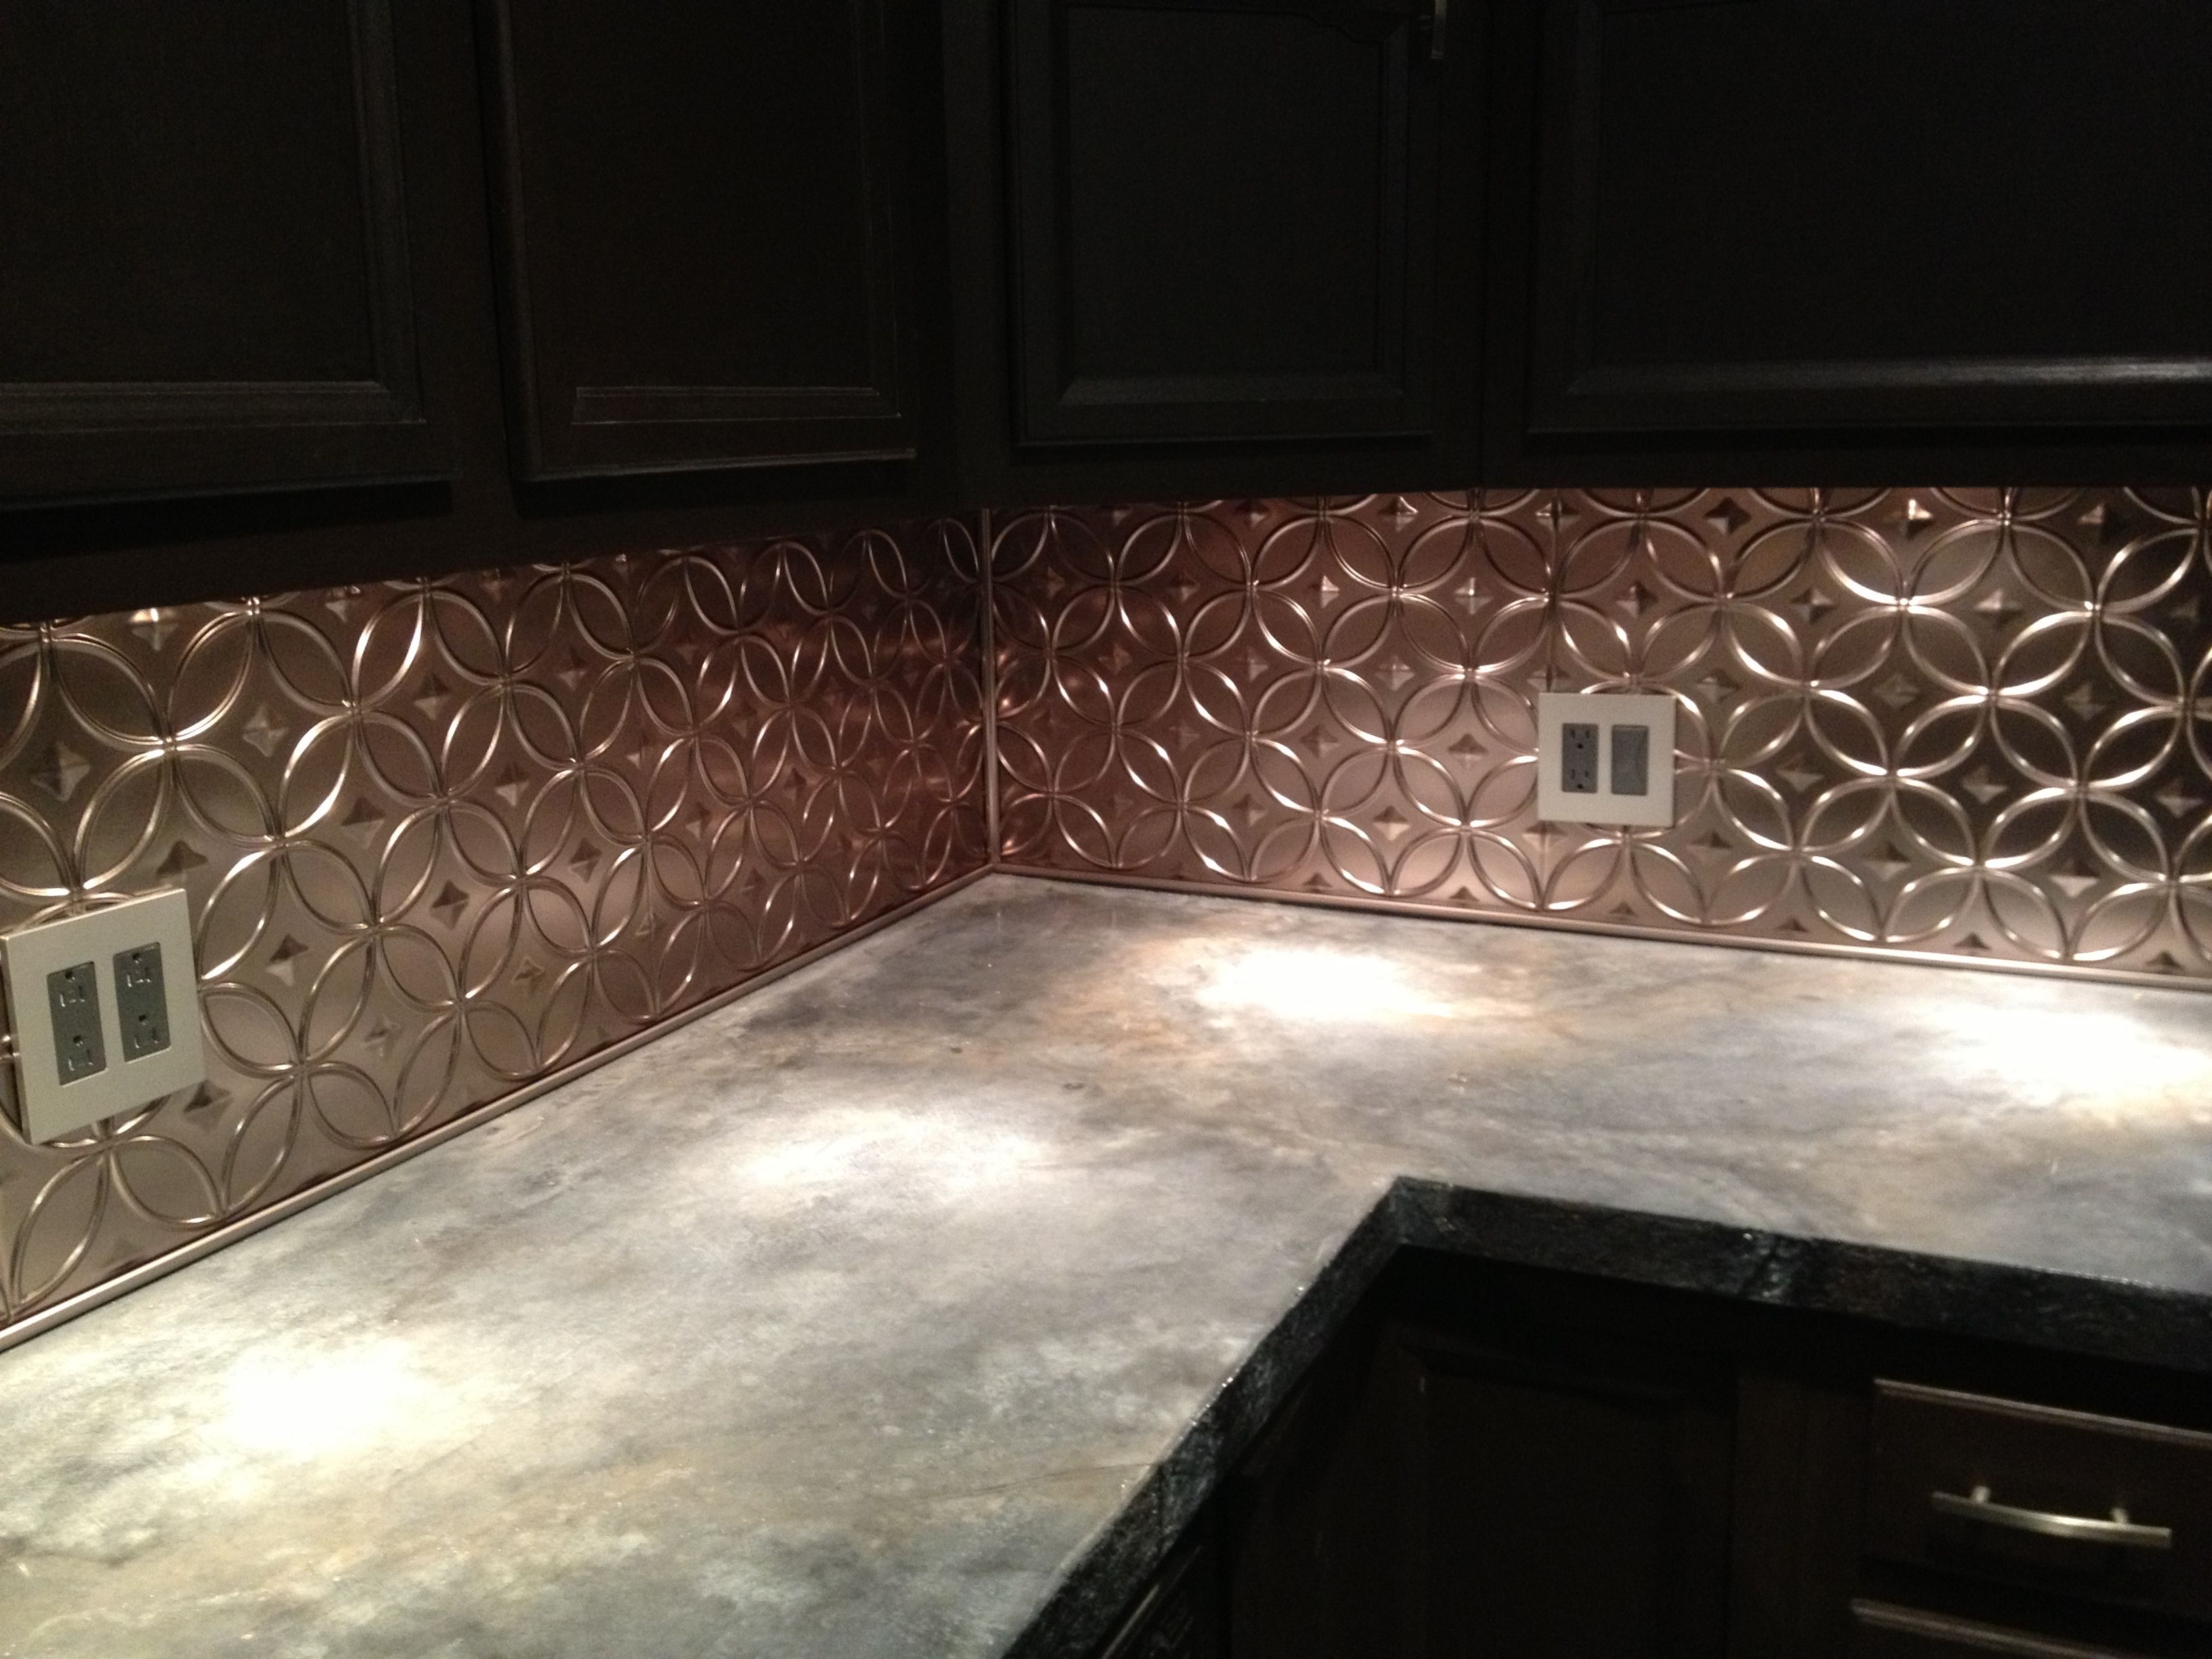 diy concrete countertop and new tin backsplash! it's finally done